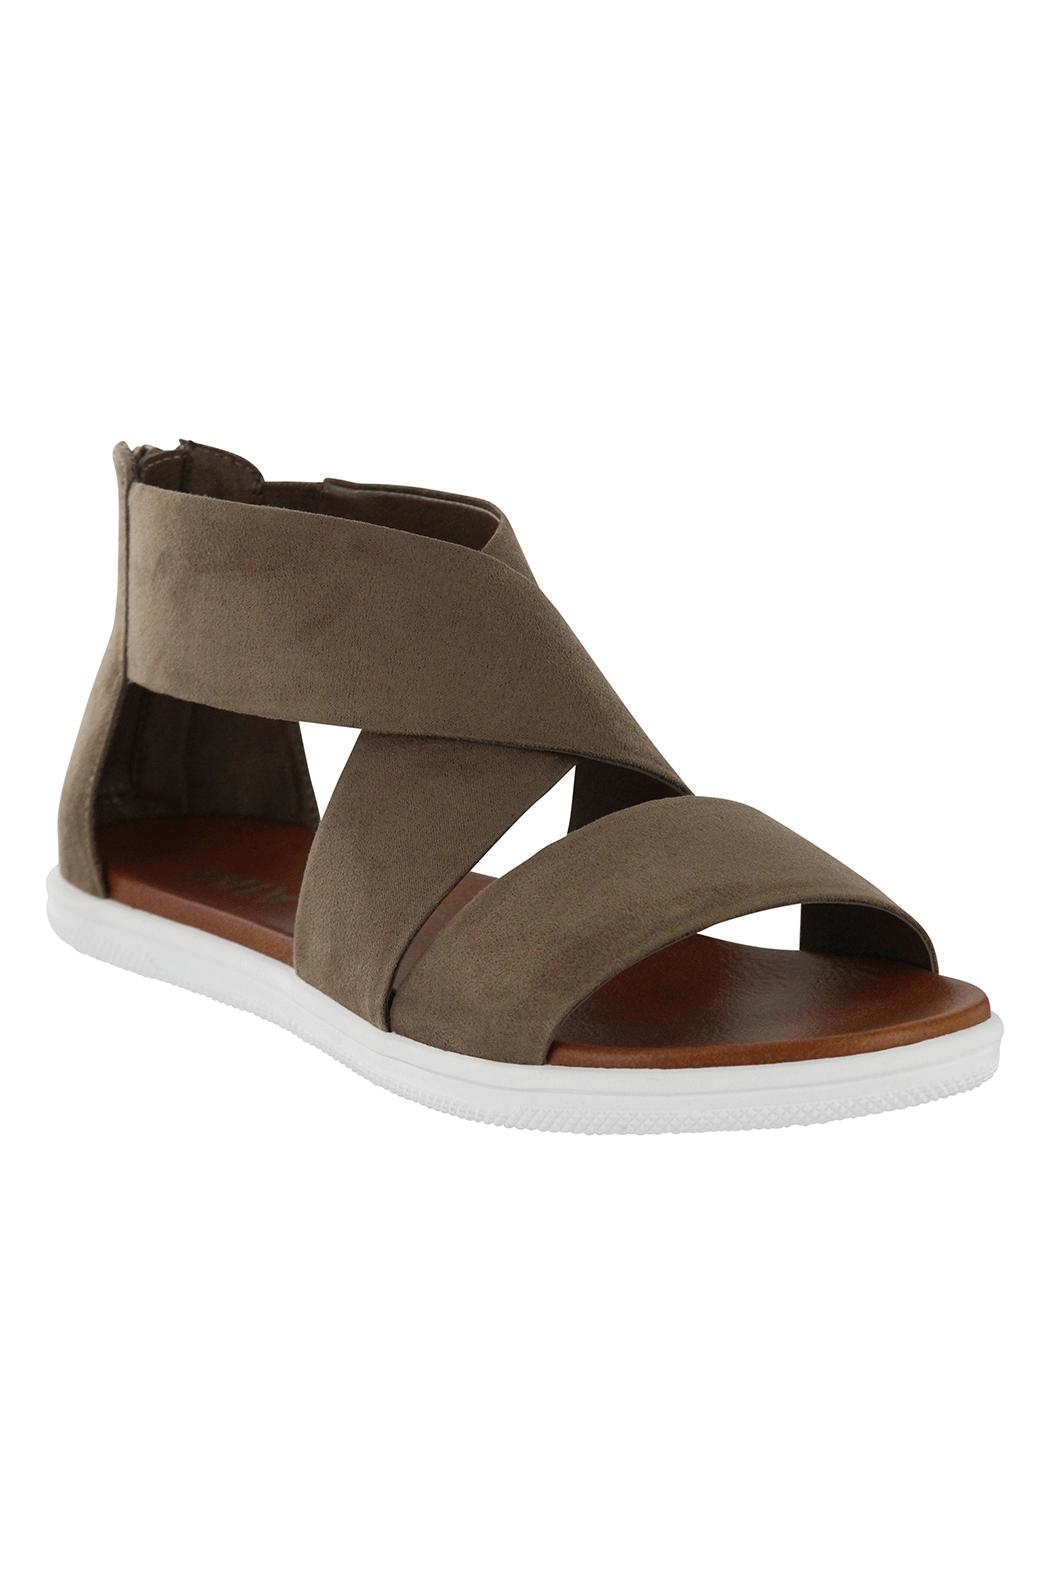 MIA Shoes Deana Sandal - Front Cropped Image